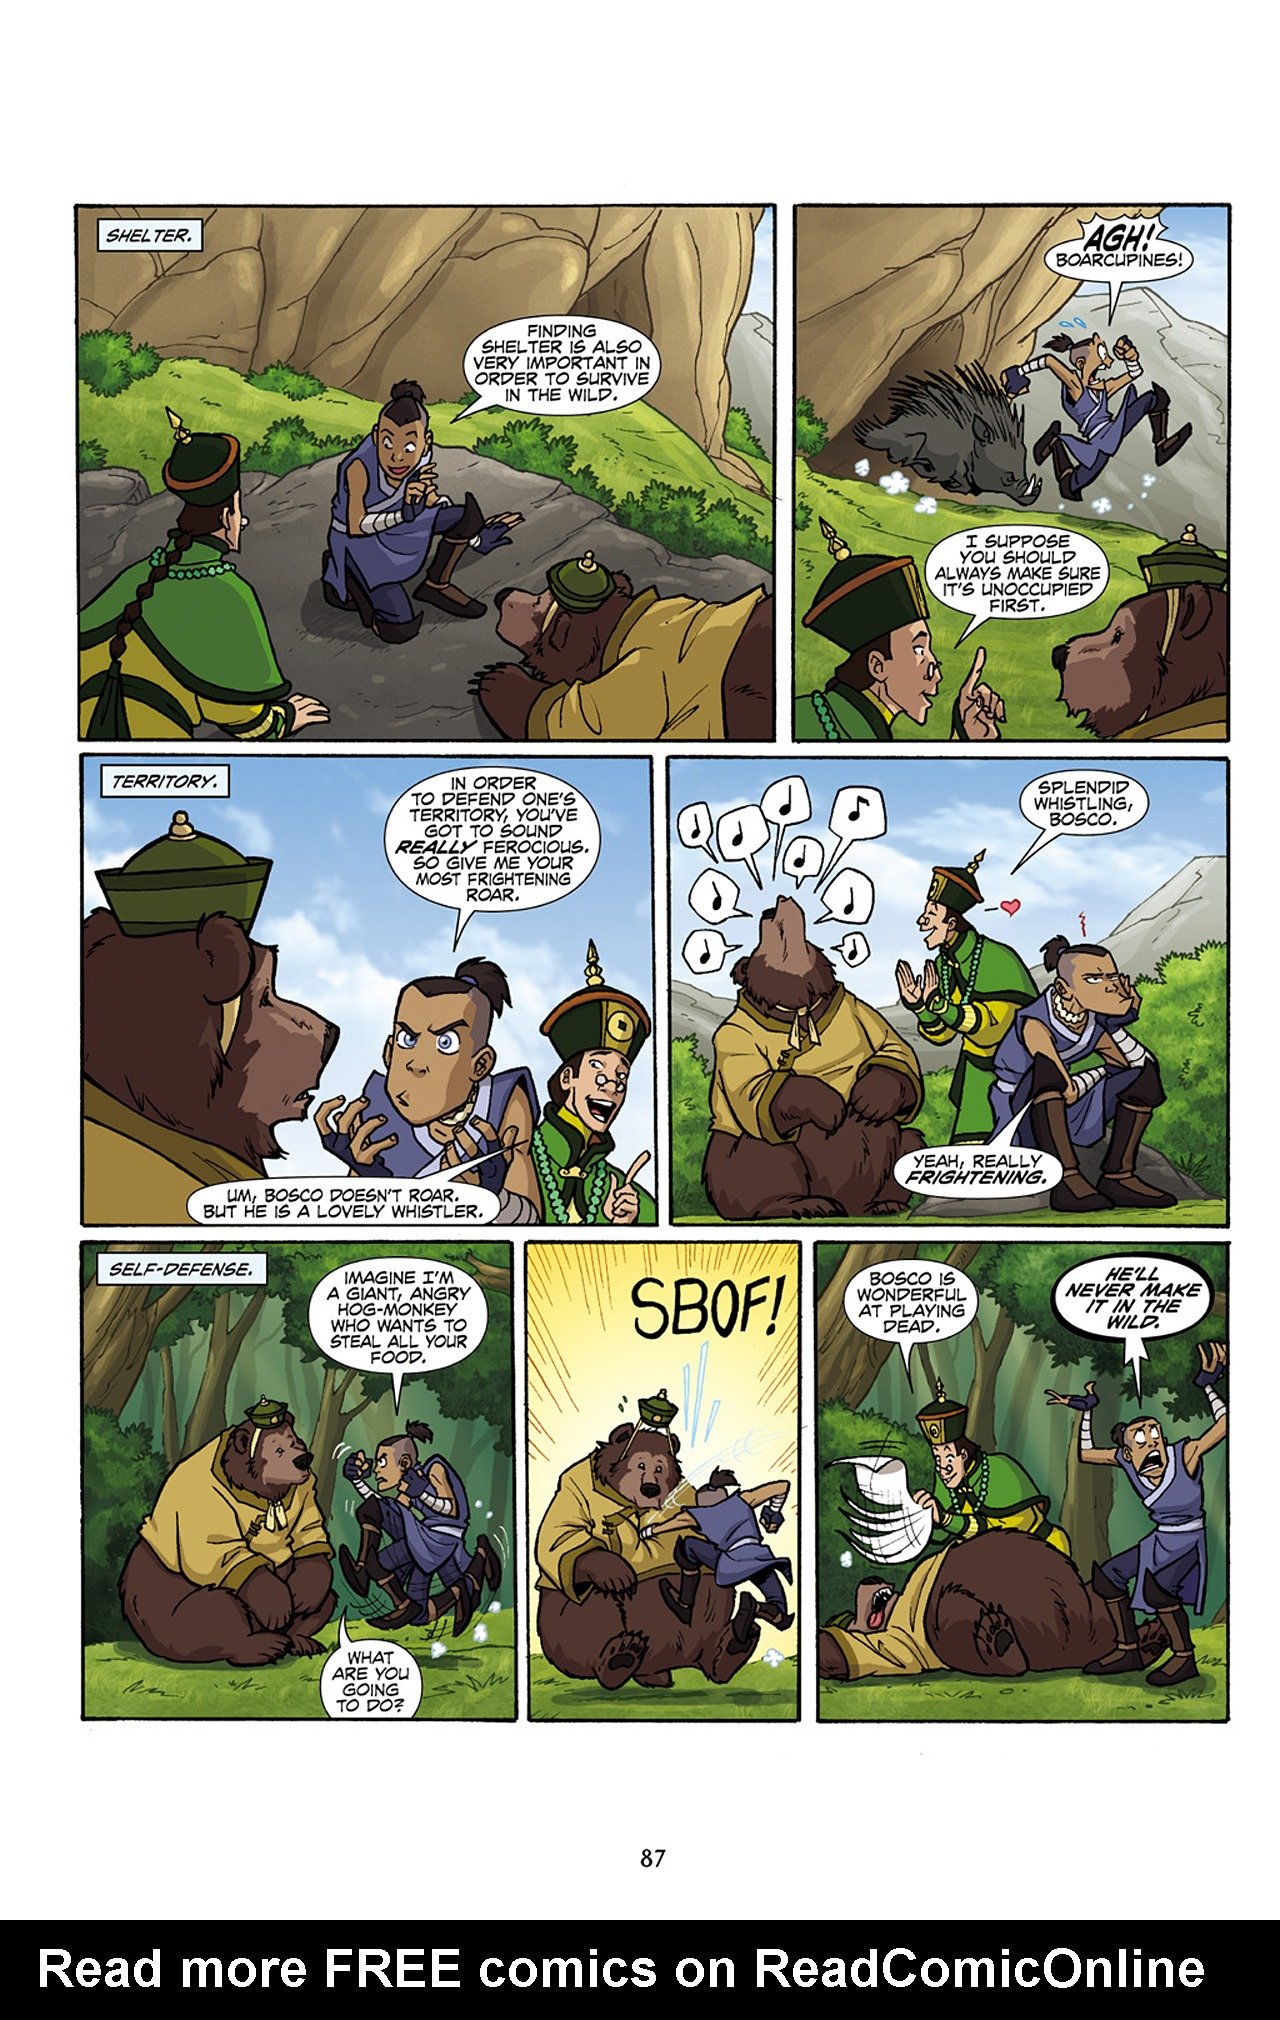 Nickelodeon Avatar: The Last Airbender - The Lost Adventures chap full pic 88